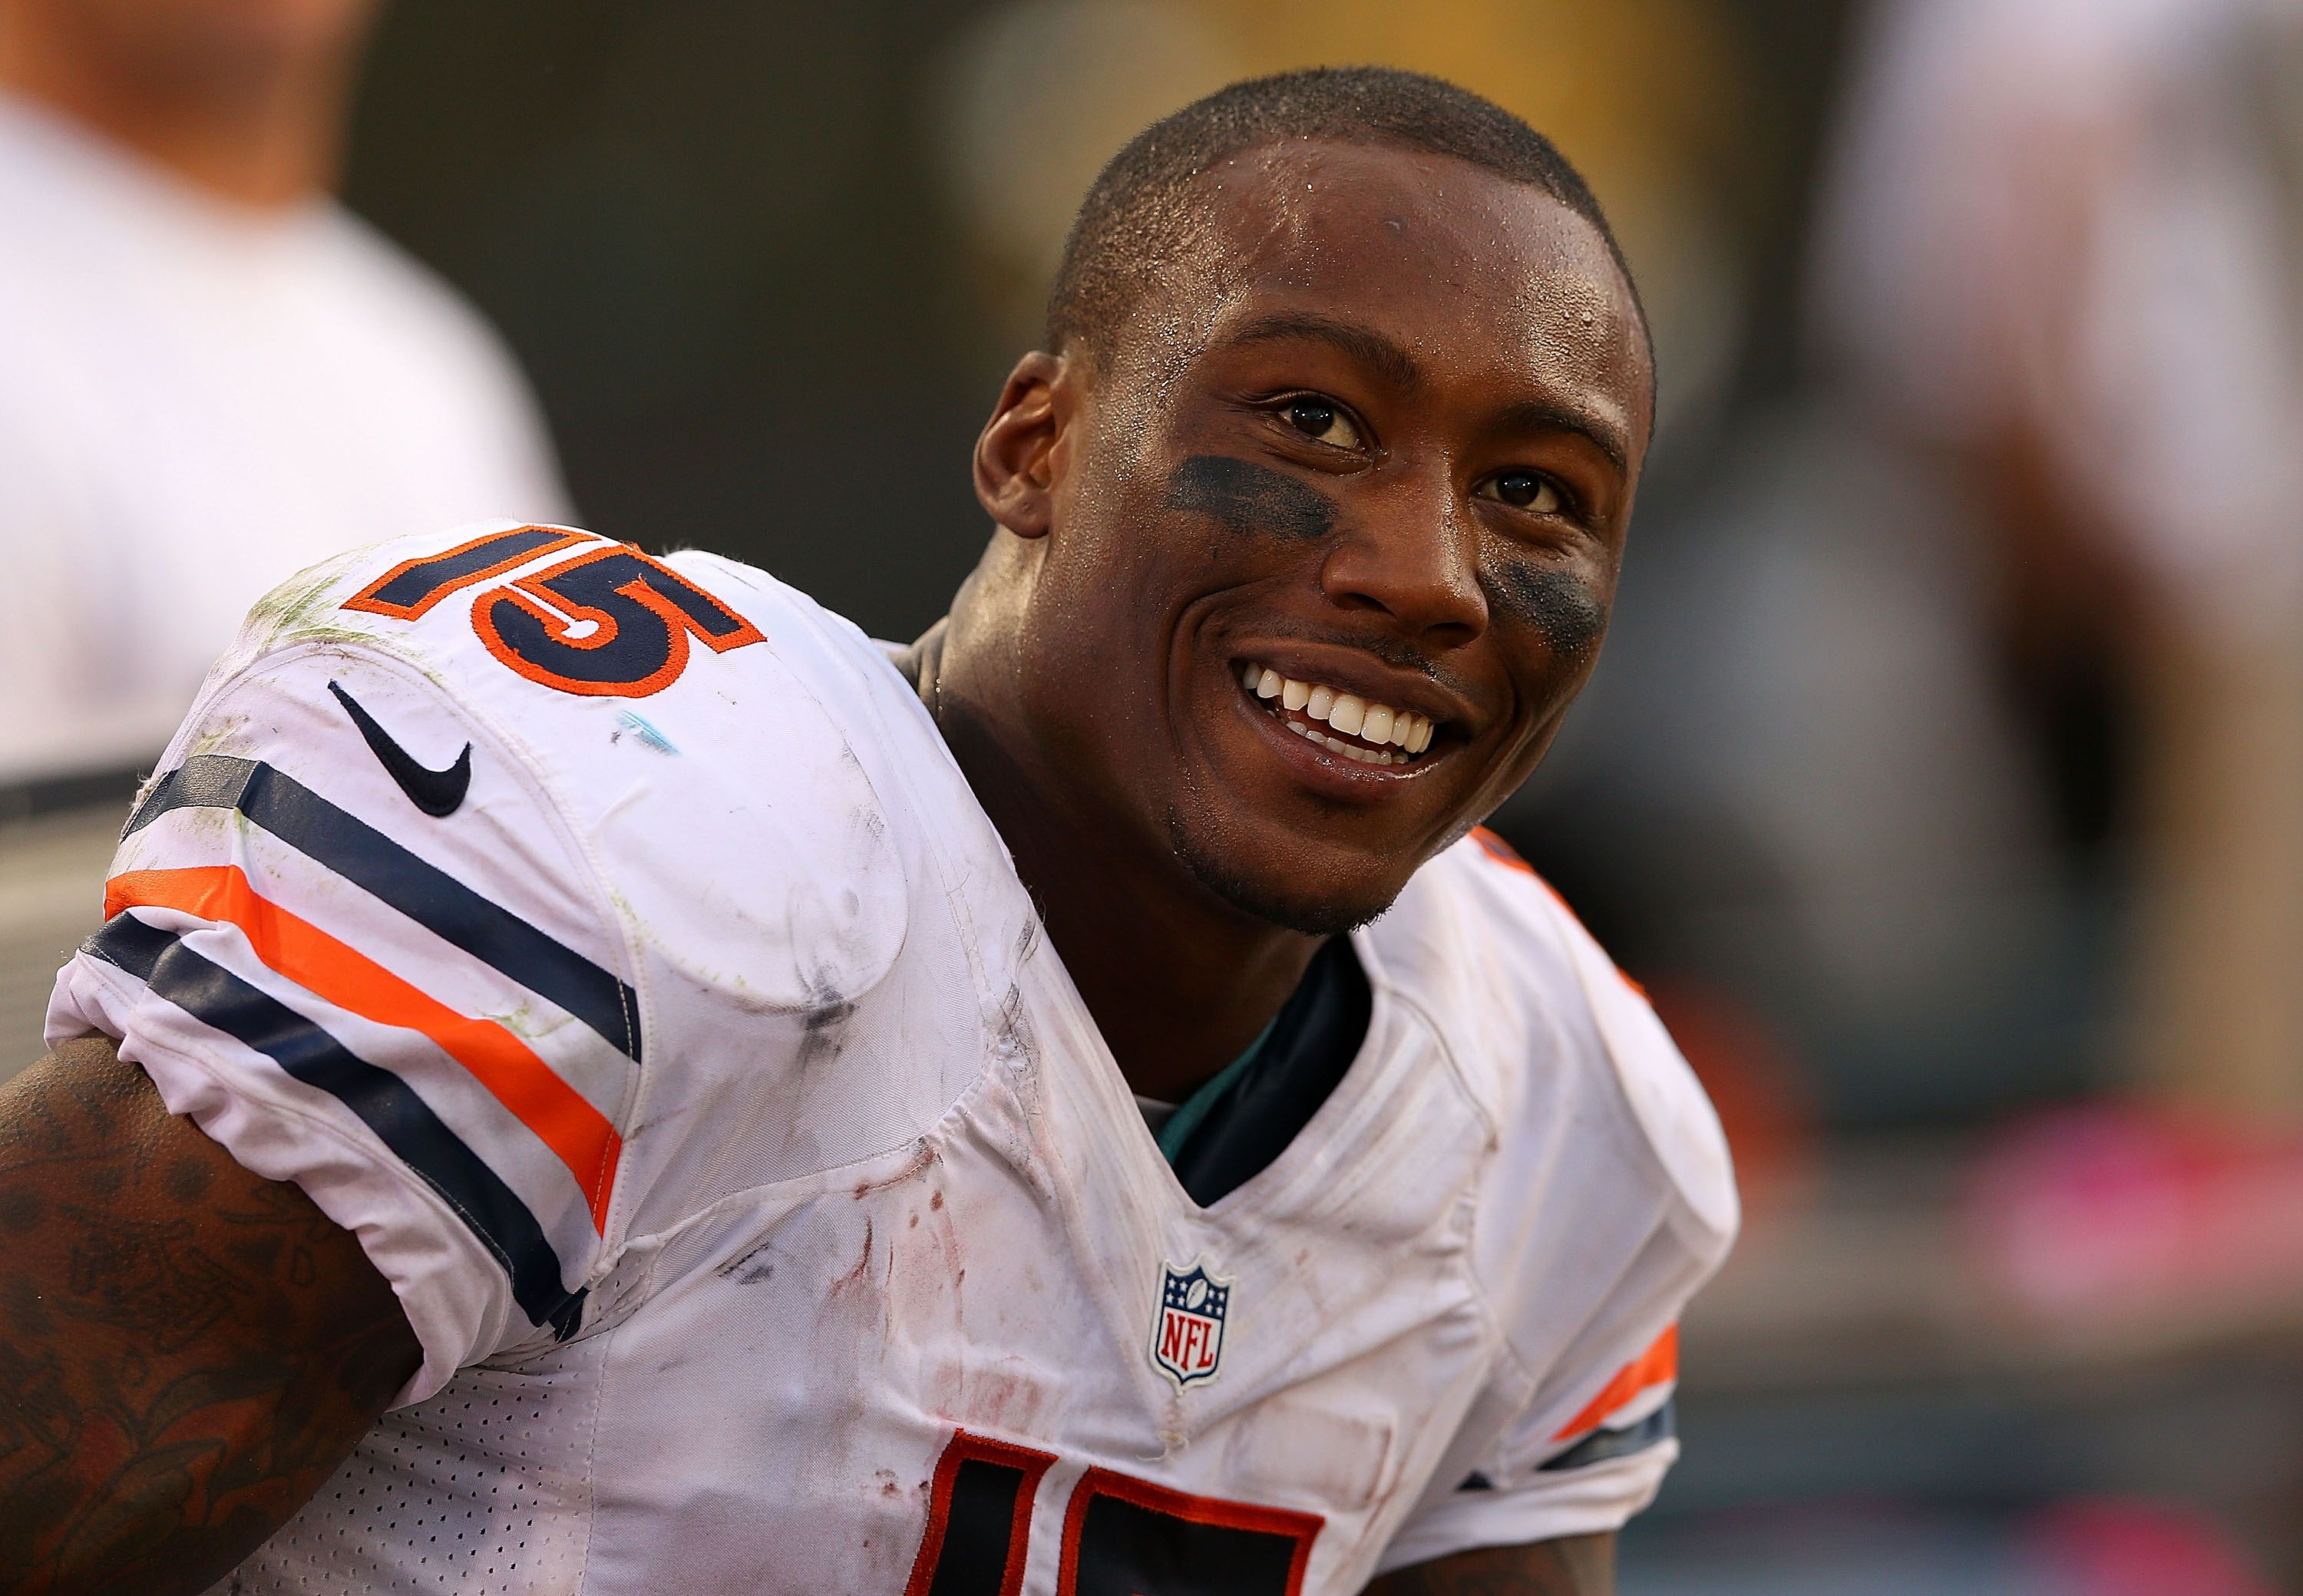 Are you my new football boyfriend? Brandon marshall